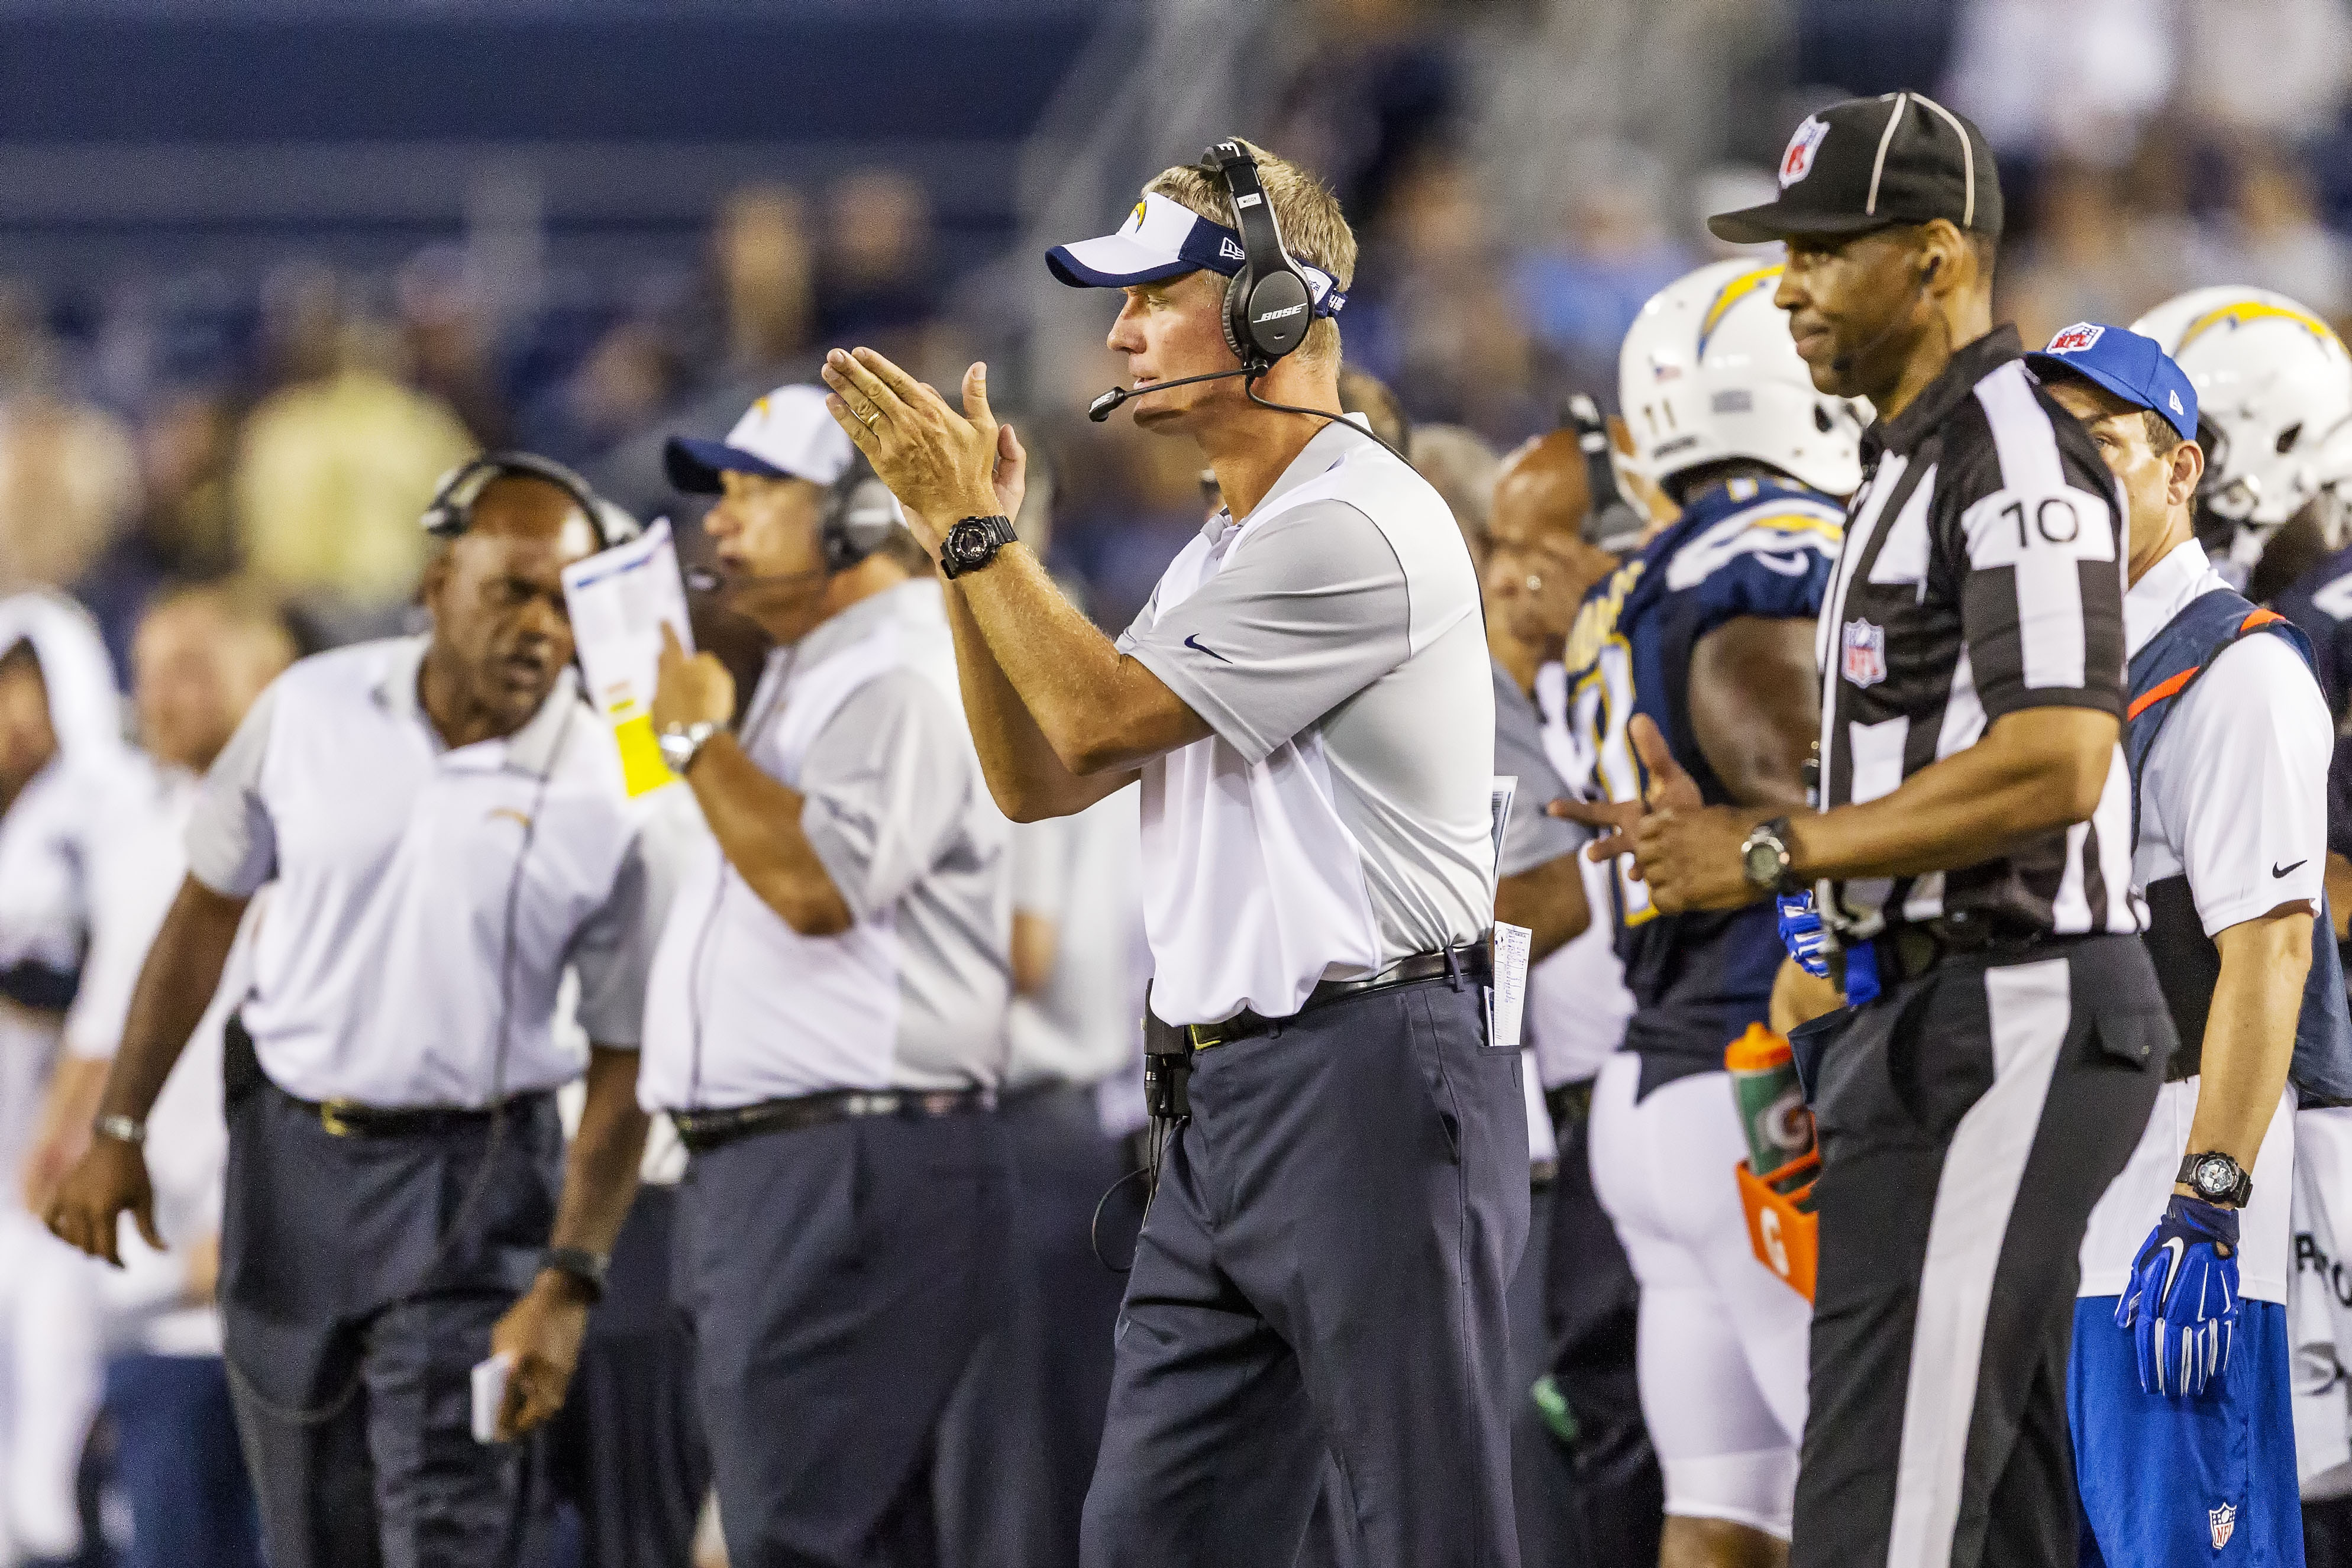 San Diego Chargers head coach Mike McCoy provides encouragement after the team recovered a Dallas Cowboys' fumble. Photo by Bill Reilly